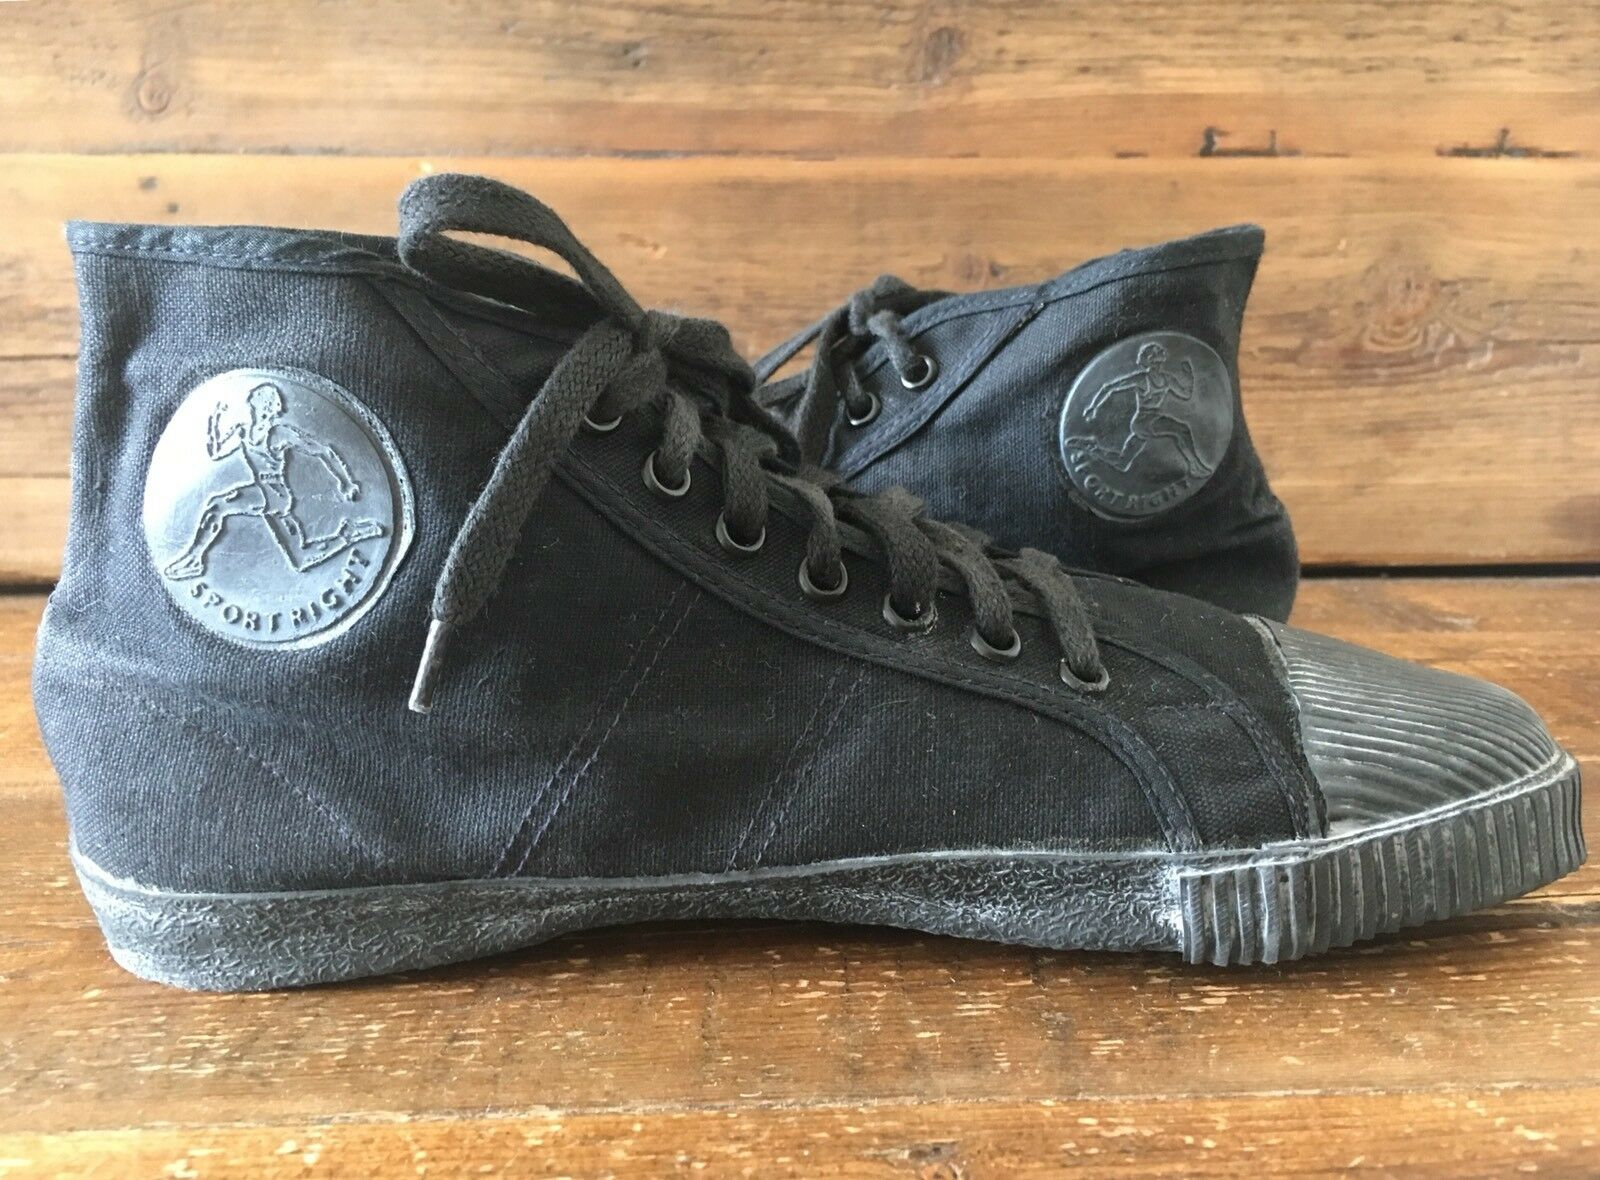 PLIMSOLL Hi Tops sportright vintage made in India taglia 8 Nero MARBOT Stile